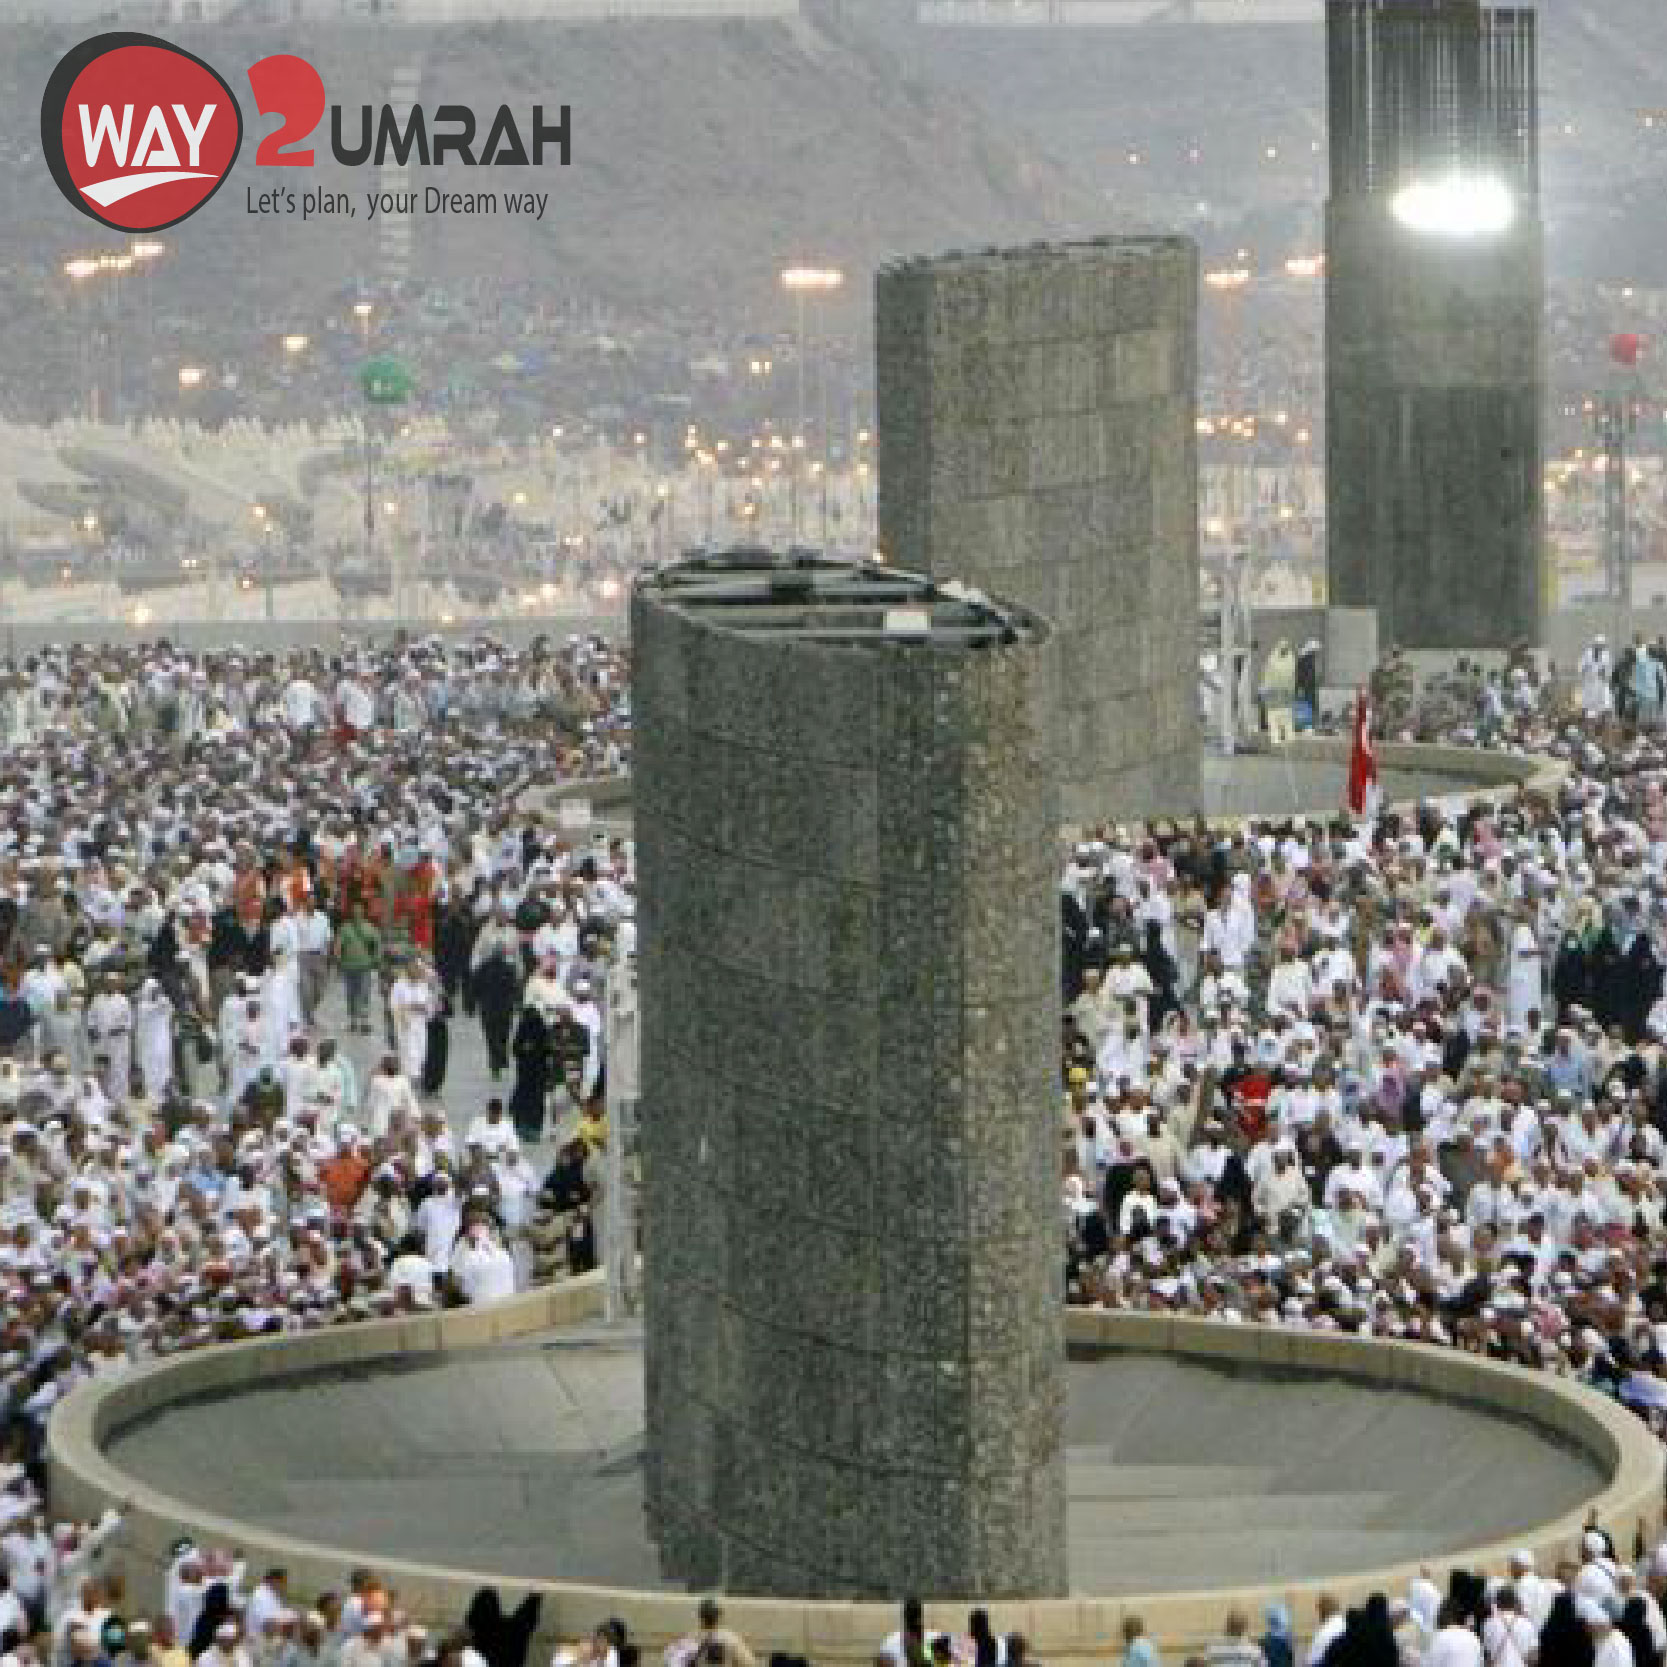 best umrah operators and travel agency in bangalore, india